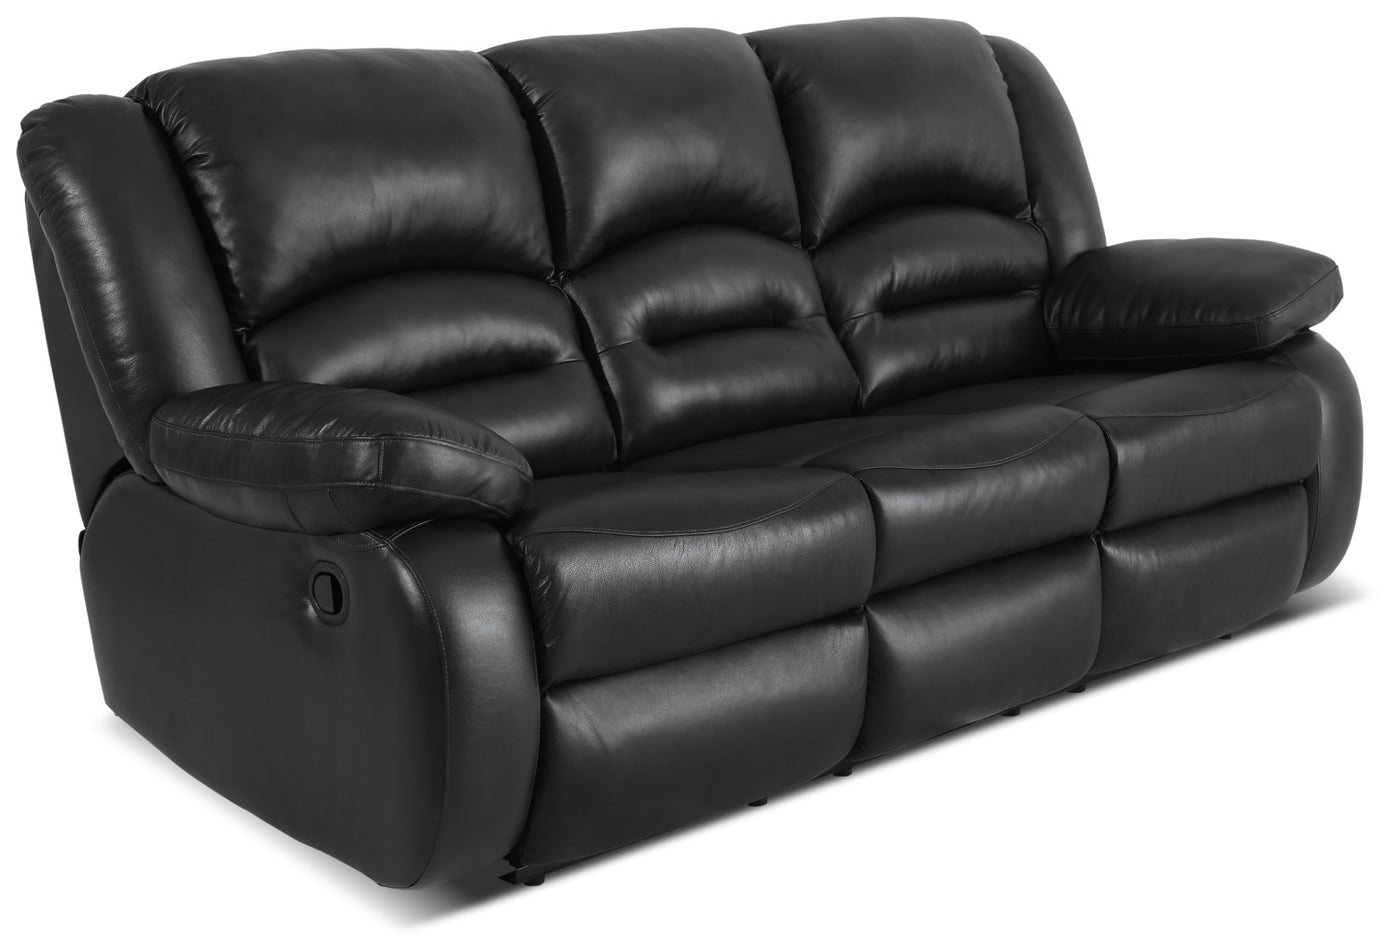 Toreno Genuine Leather Reclining Sofa – Black | The Brick